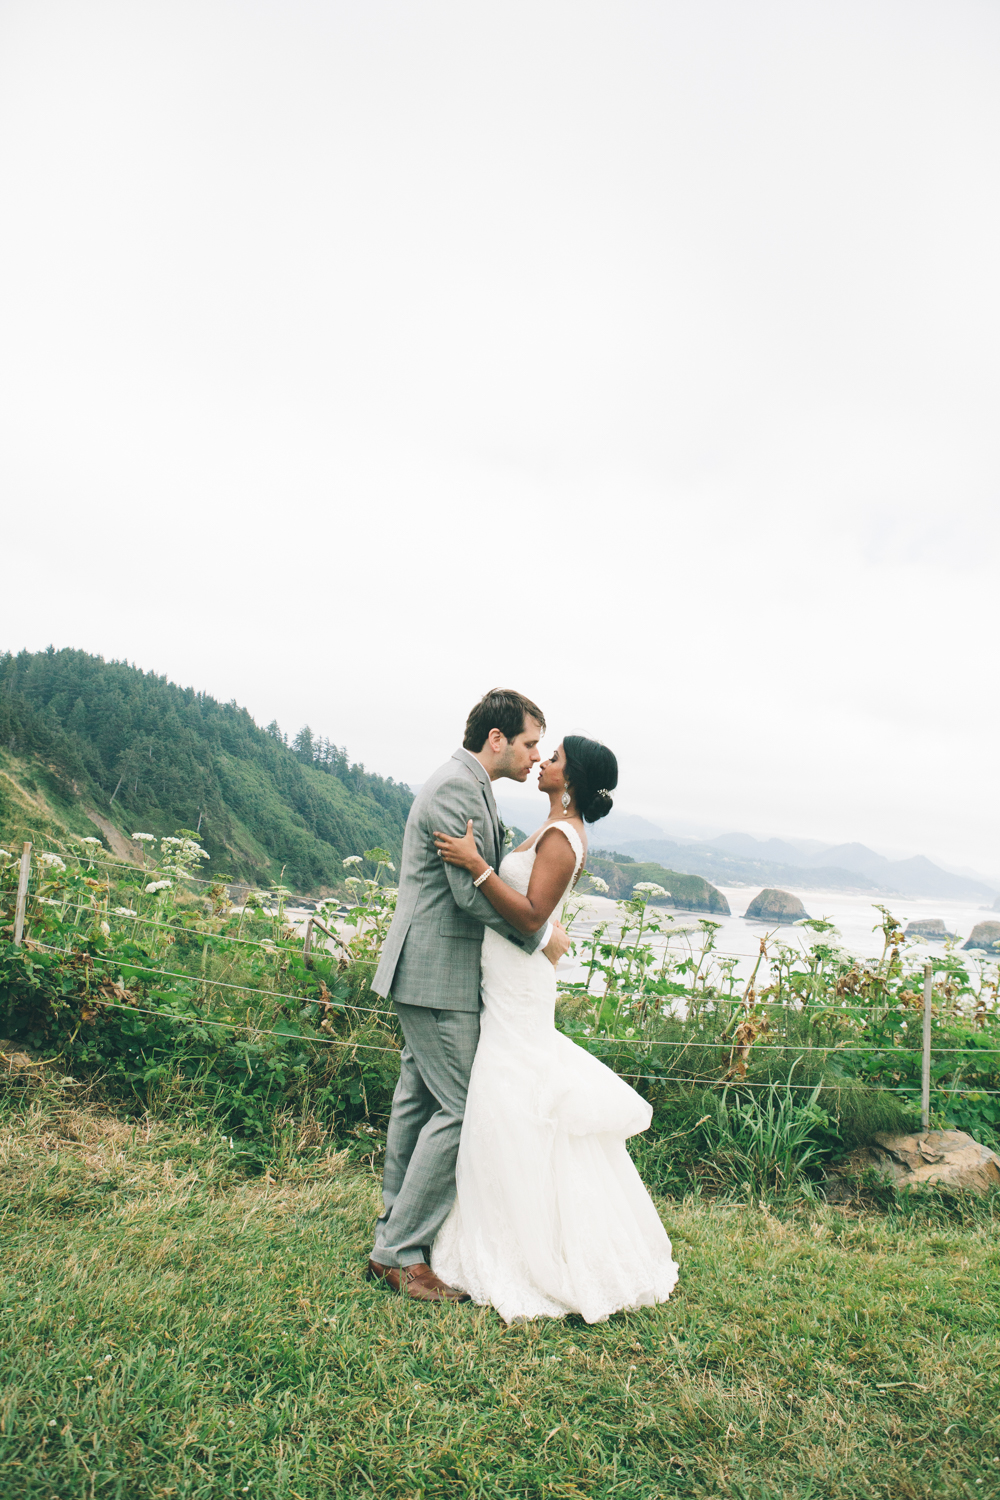 cannonbeachwedding-67.jpg